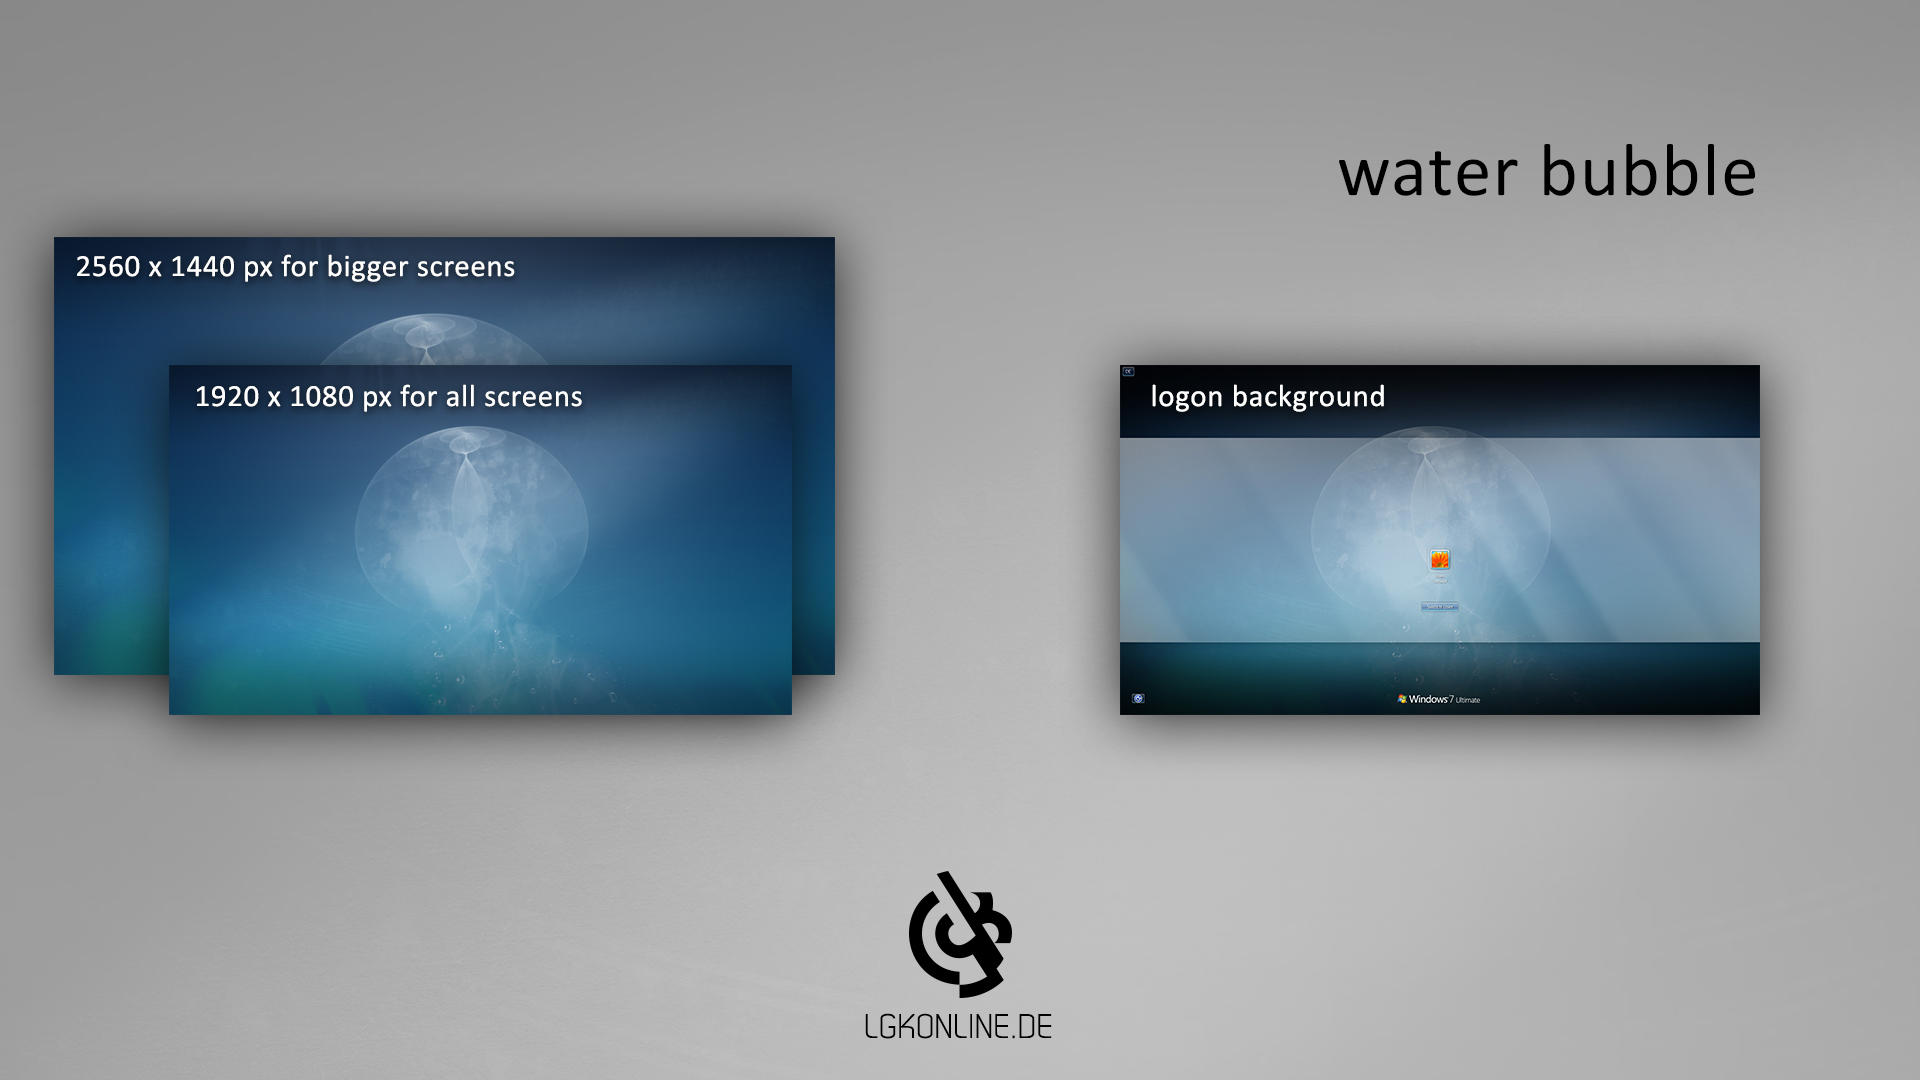 Water bubble - Wallpaper and logon background by lgkonline